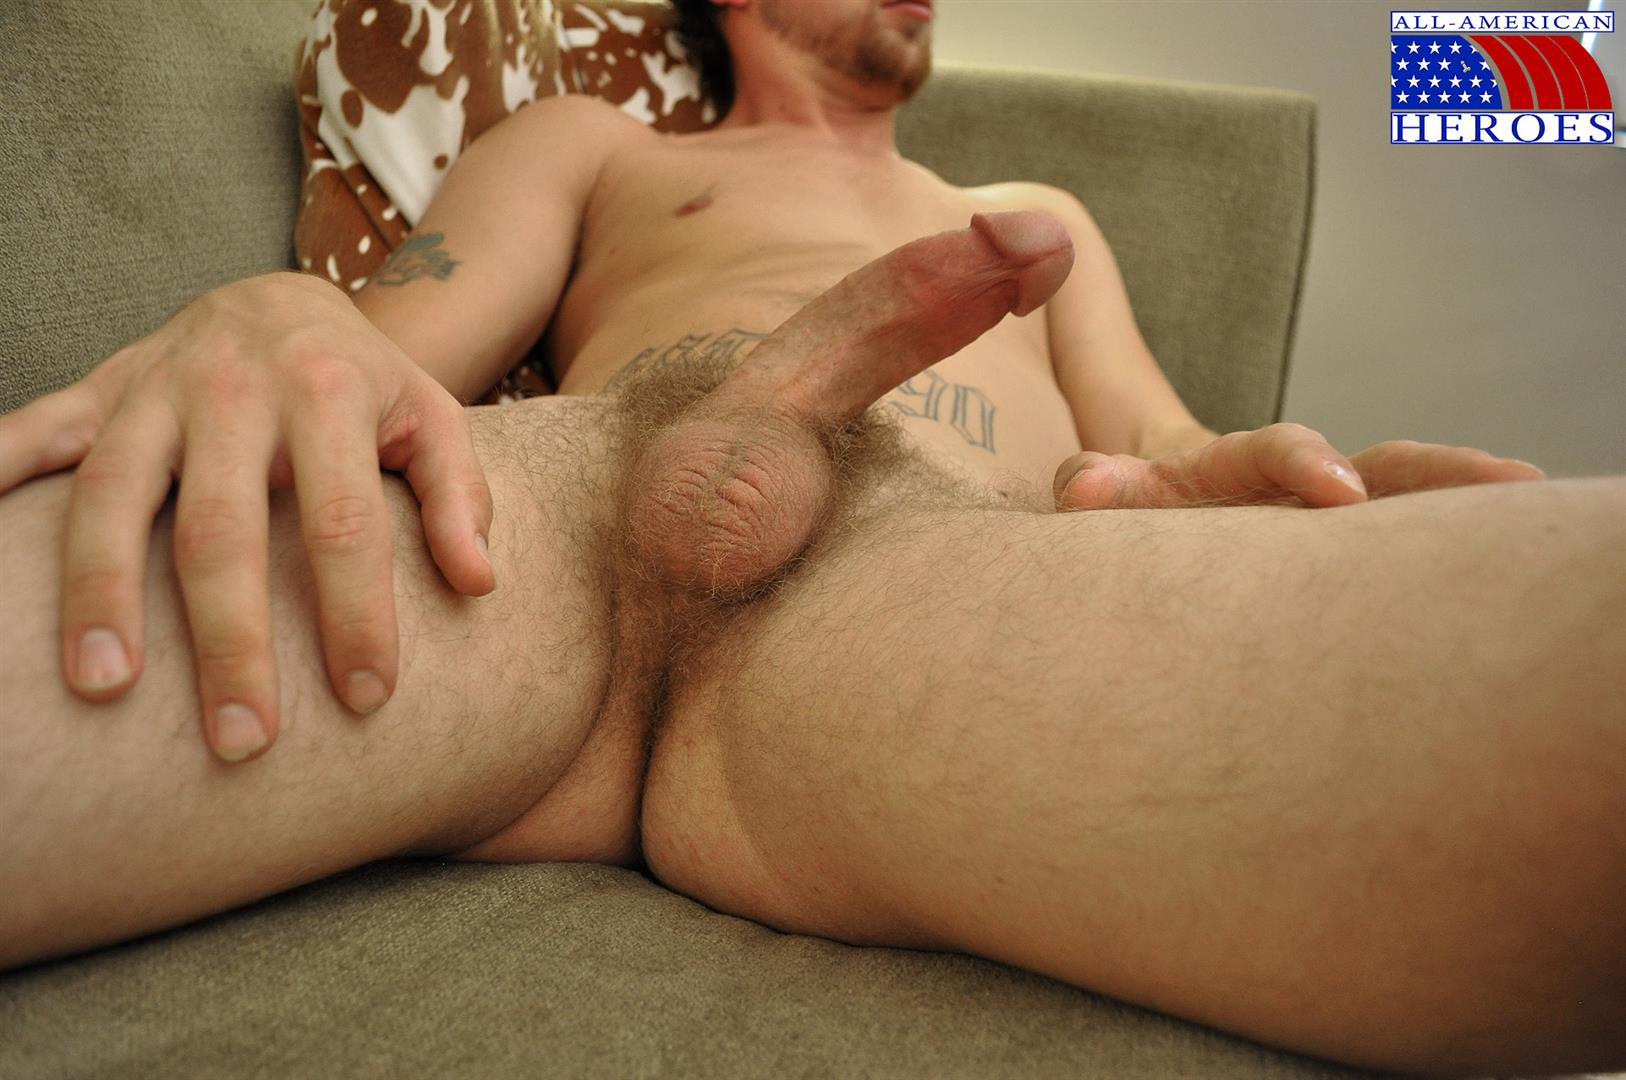 All American Heroes US Army Specialist Clark Jerking His Big Hairy Cock Amateur Gay Porn 11 US Army Specialist Masturbating His Hairy Curved Cock